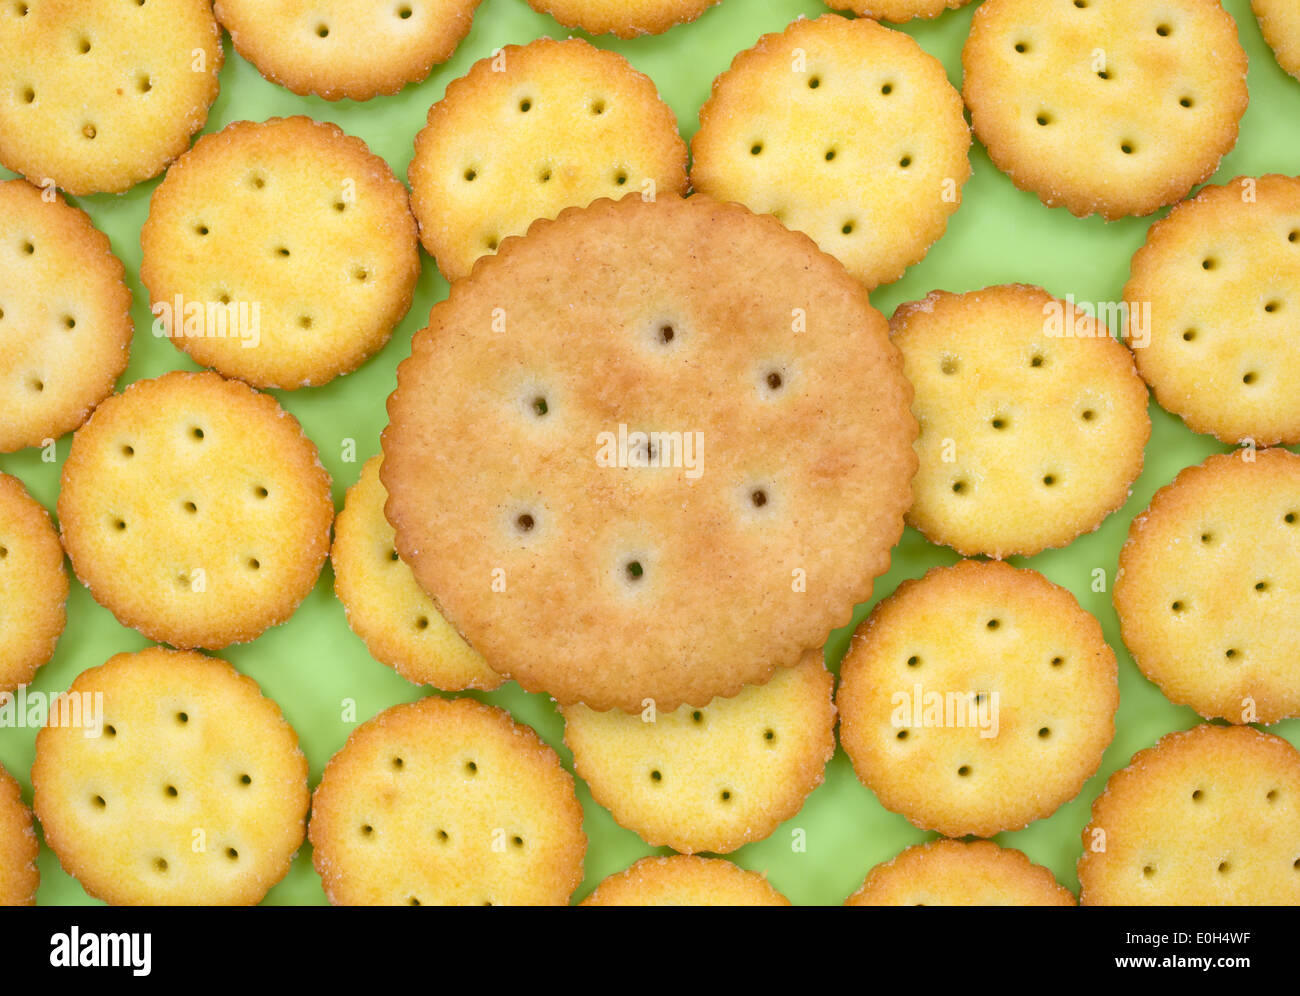 A group of small snack crackers on a green plate with a larger Stock Photo, Royalty Free Image: 69218507